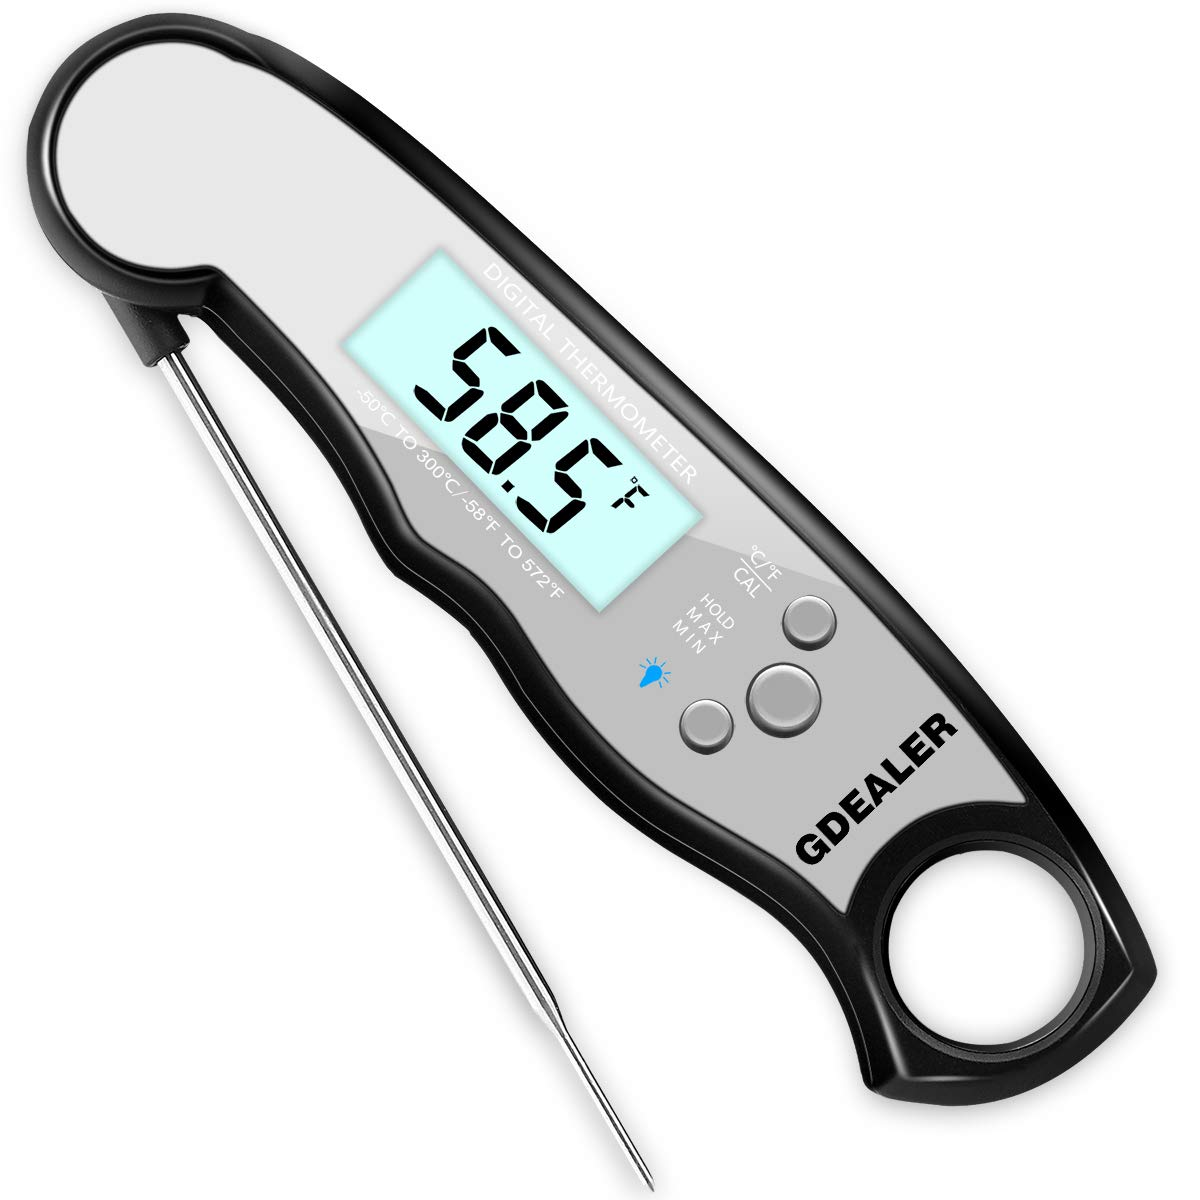 GDEALER Waterproof Meat Thermometer Digital Super Fast Instant Read Thermometer BBQ Thermometer with Calibration and Backlit Function Cooking Thermometer for Food, Candy, Milk, Tea, BBQ Grill Smokers DT8